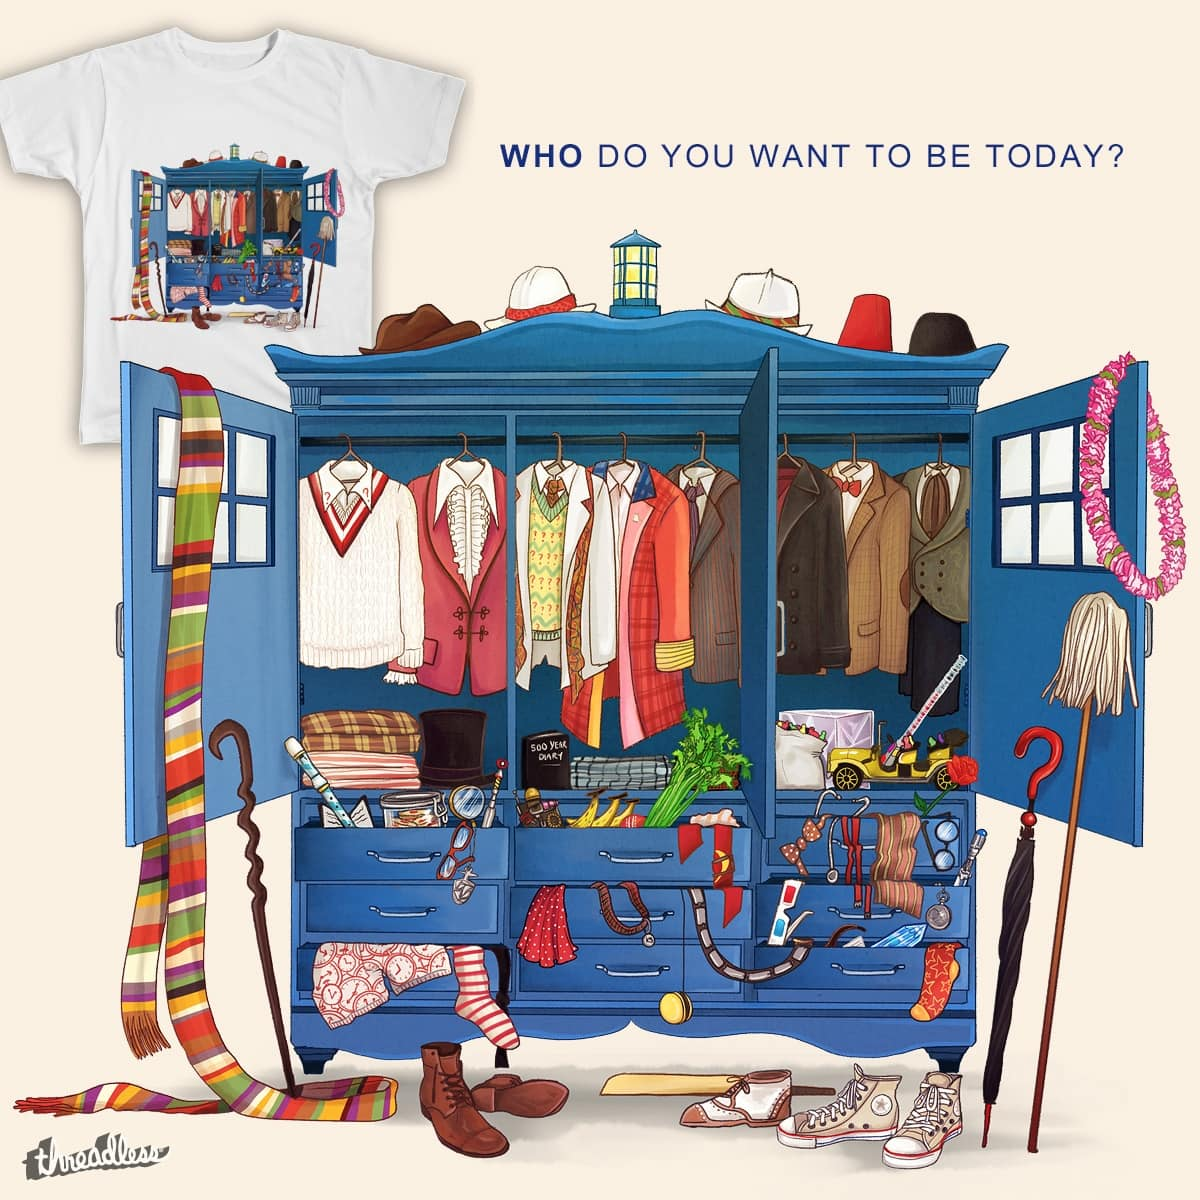 Who do you want to be today? by Alicia-B on Threadless